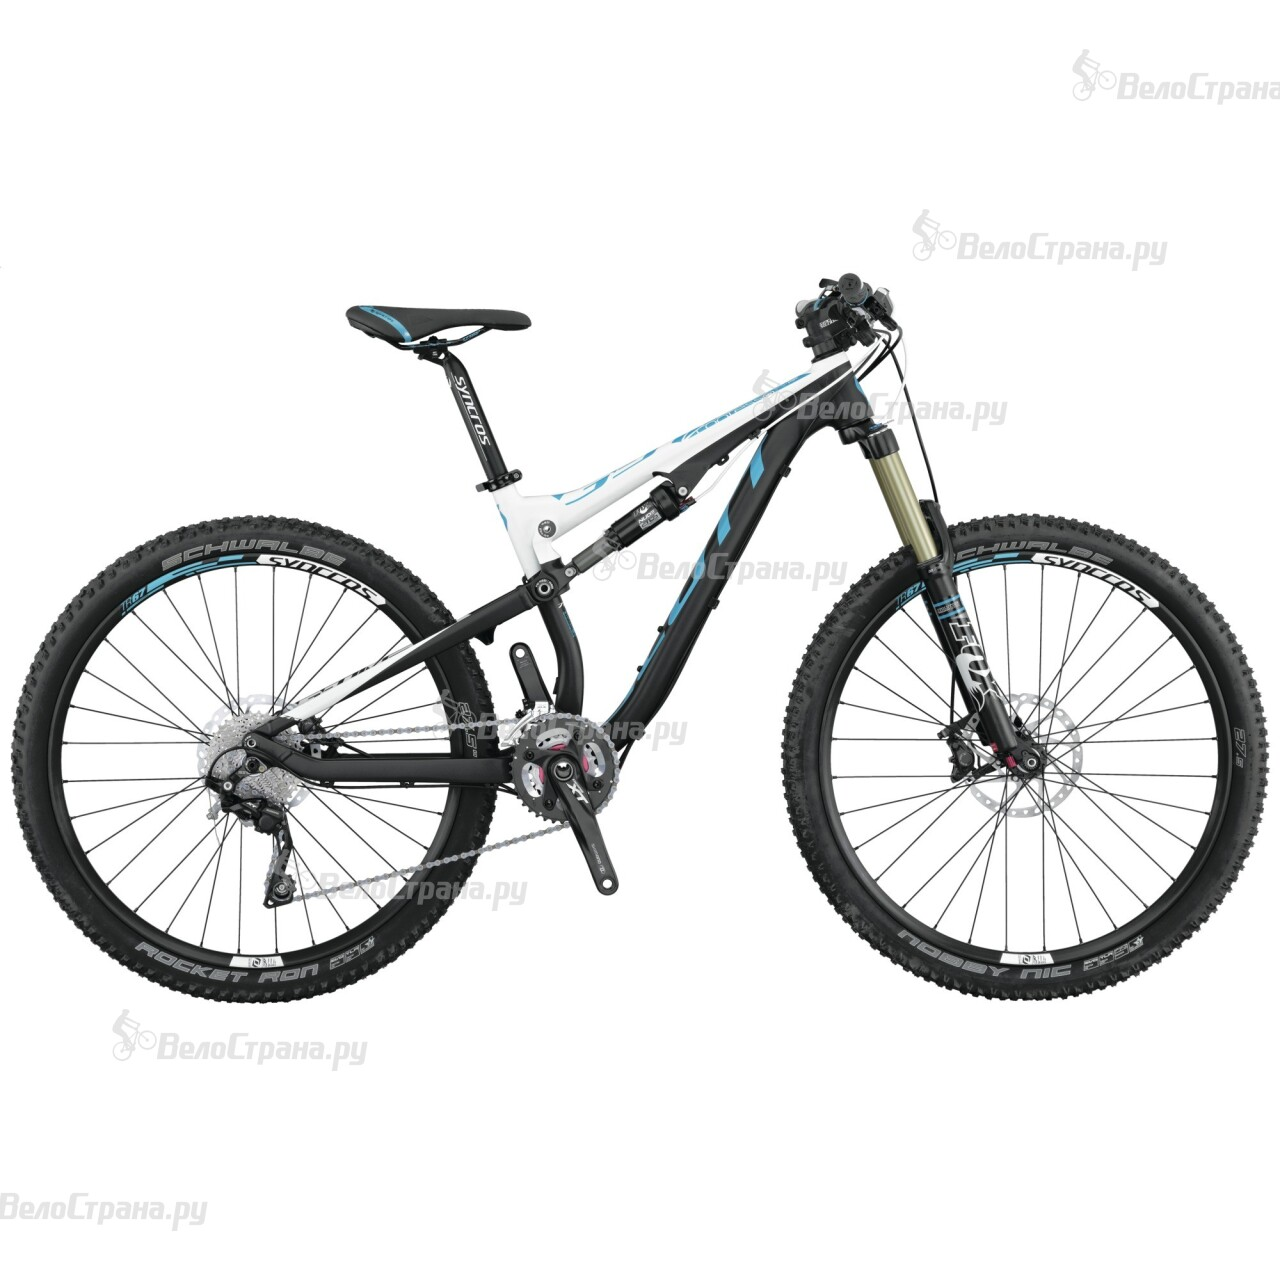 Велосипед Scott Contessa Genius 710 (2015) scott contessa genius 700 2016